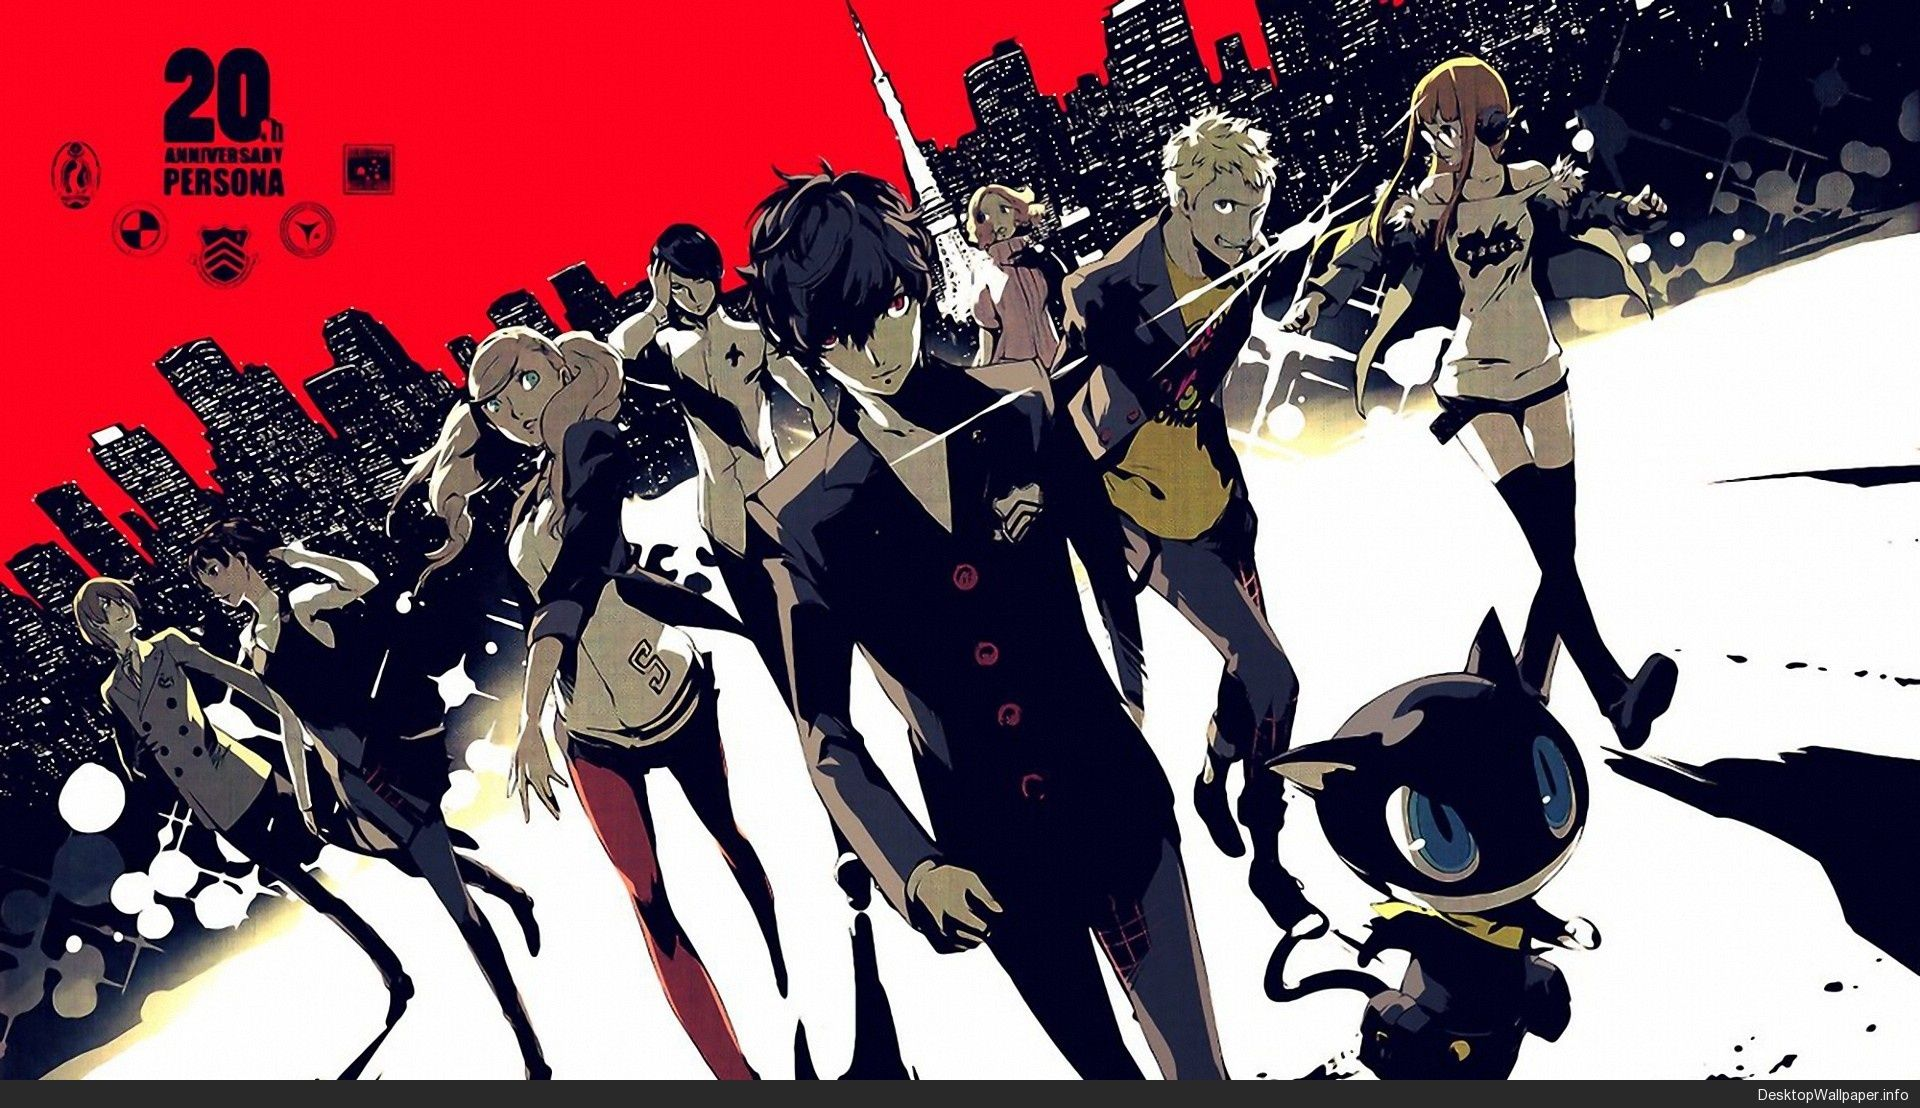 persona 5 desktop wallpaper http//desktopwallpaper.info